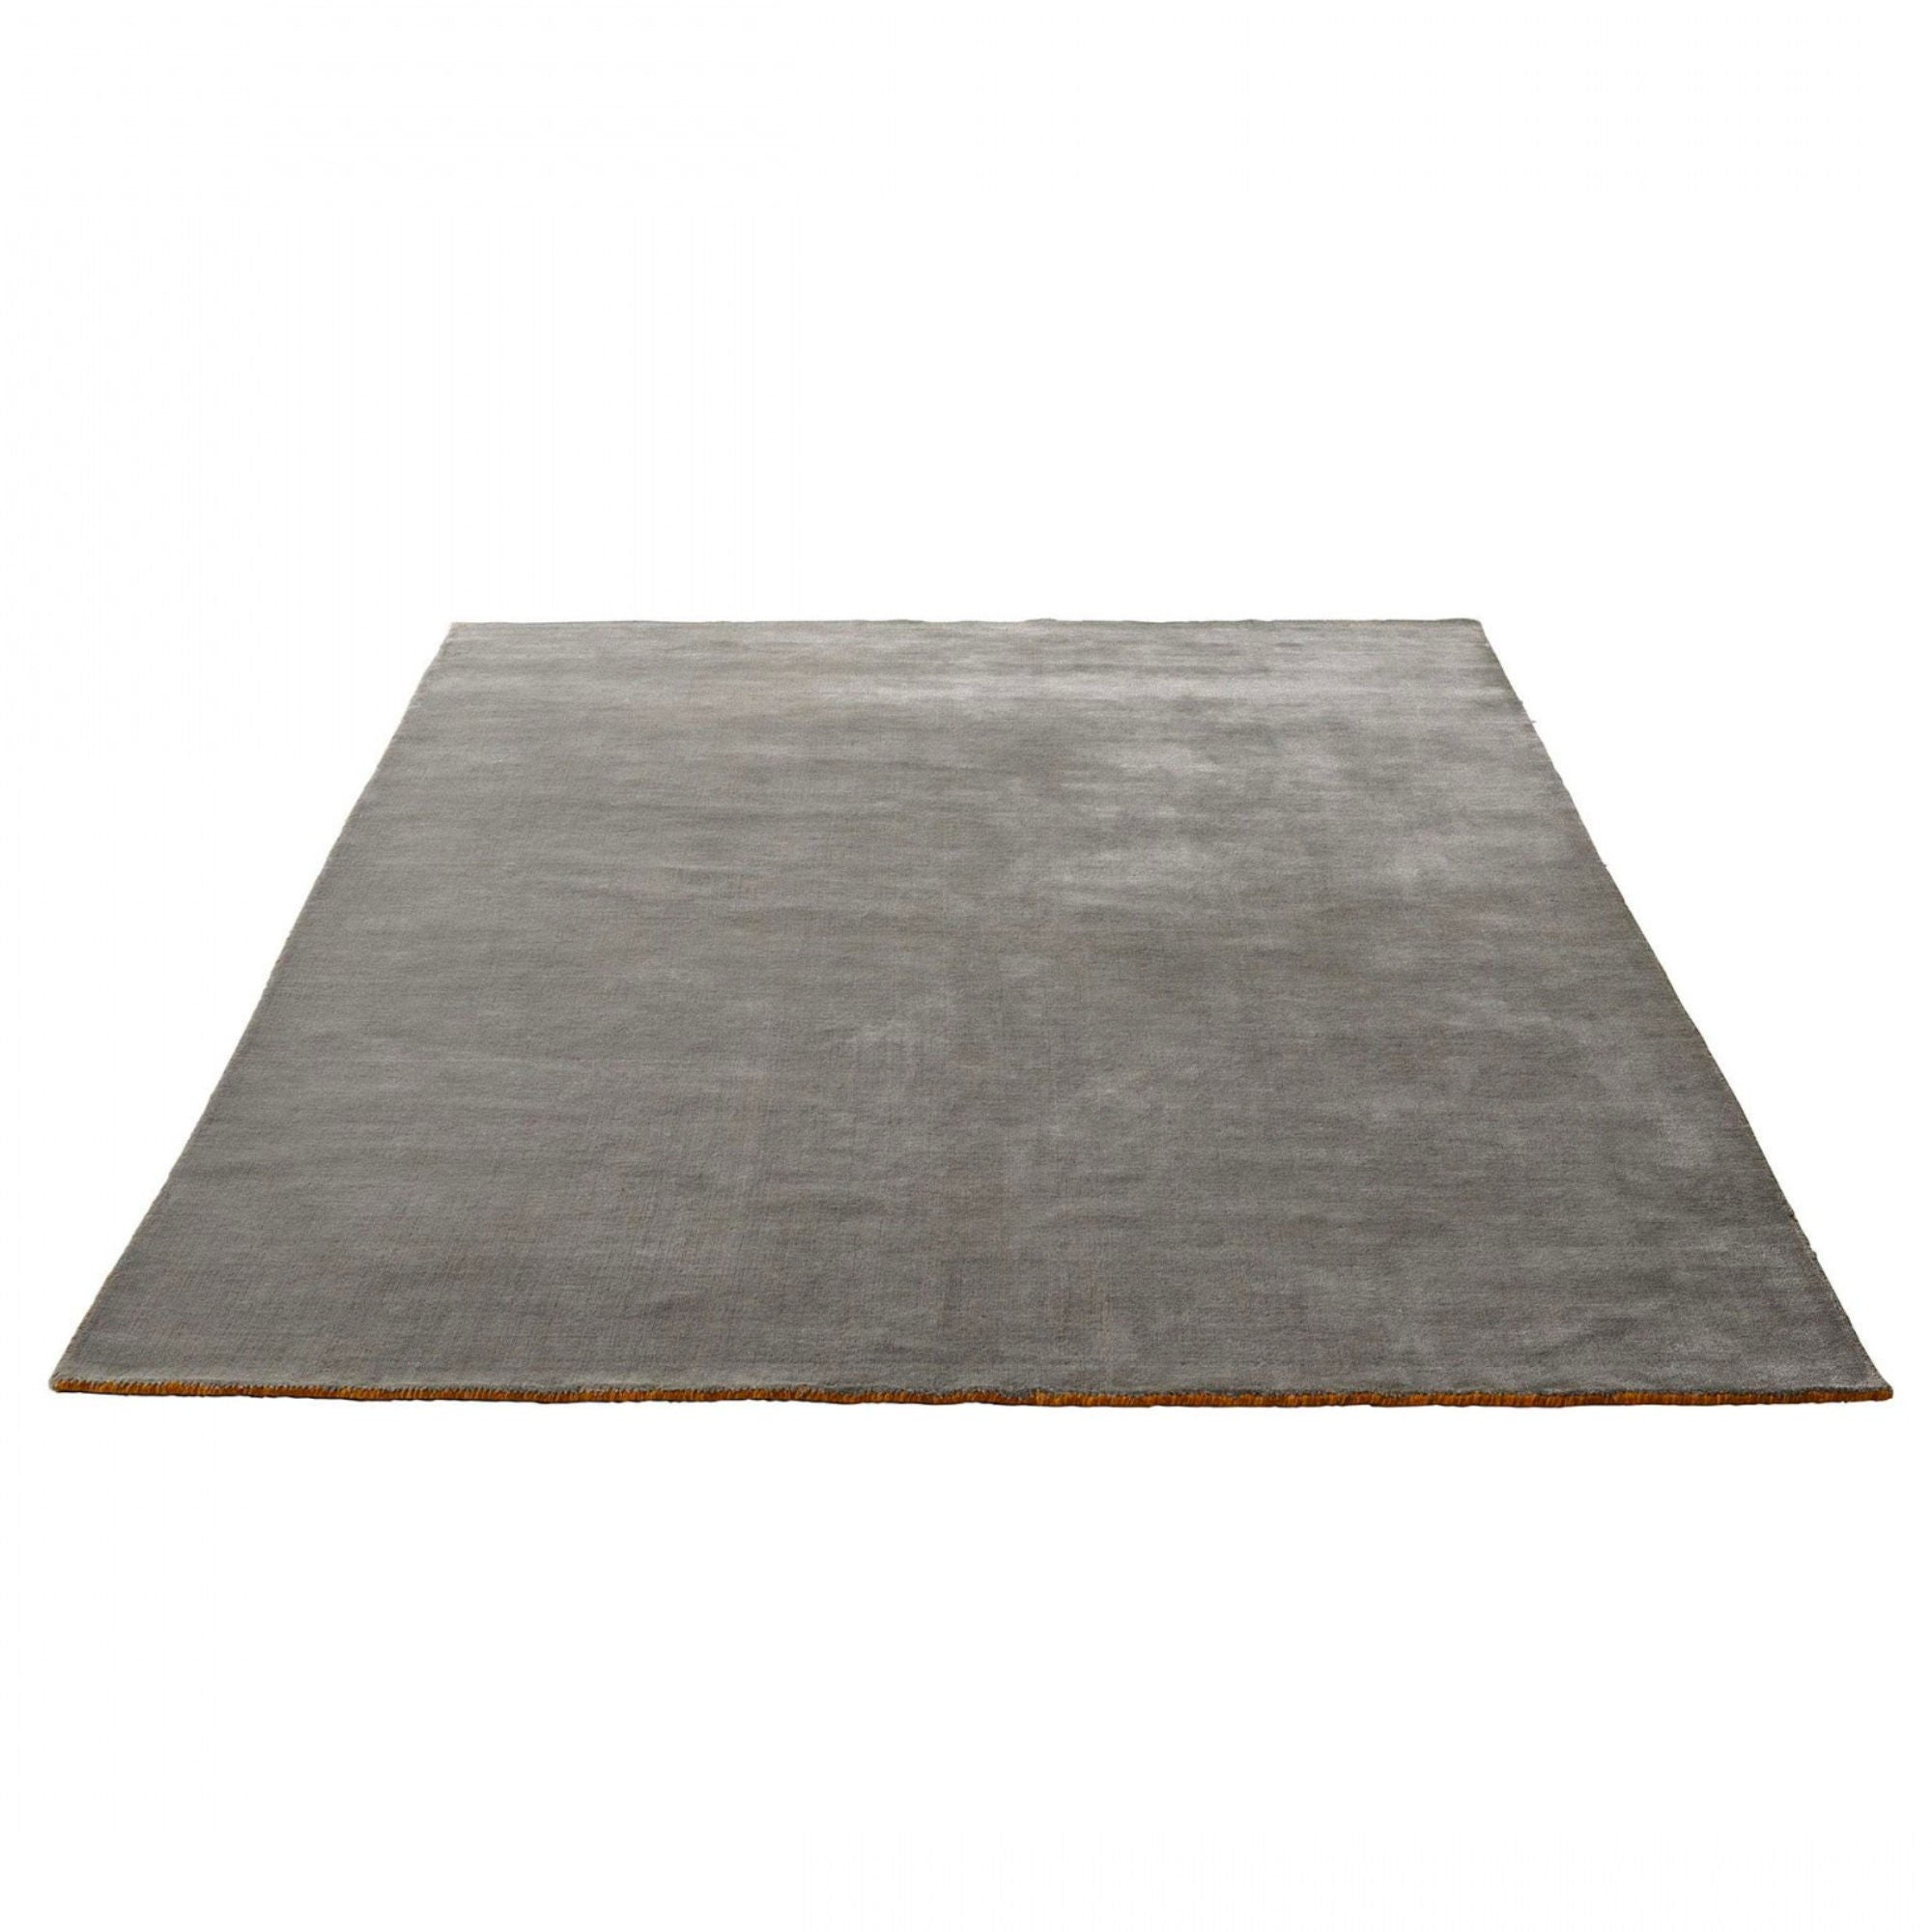 &Tradition AP7 The Moor Rug 200*300, grey moss